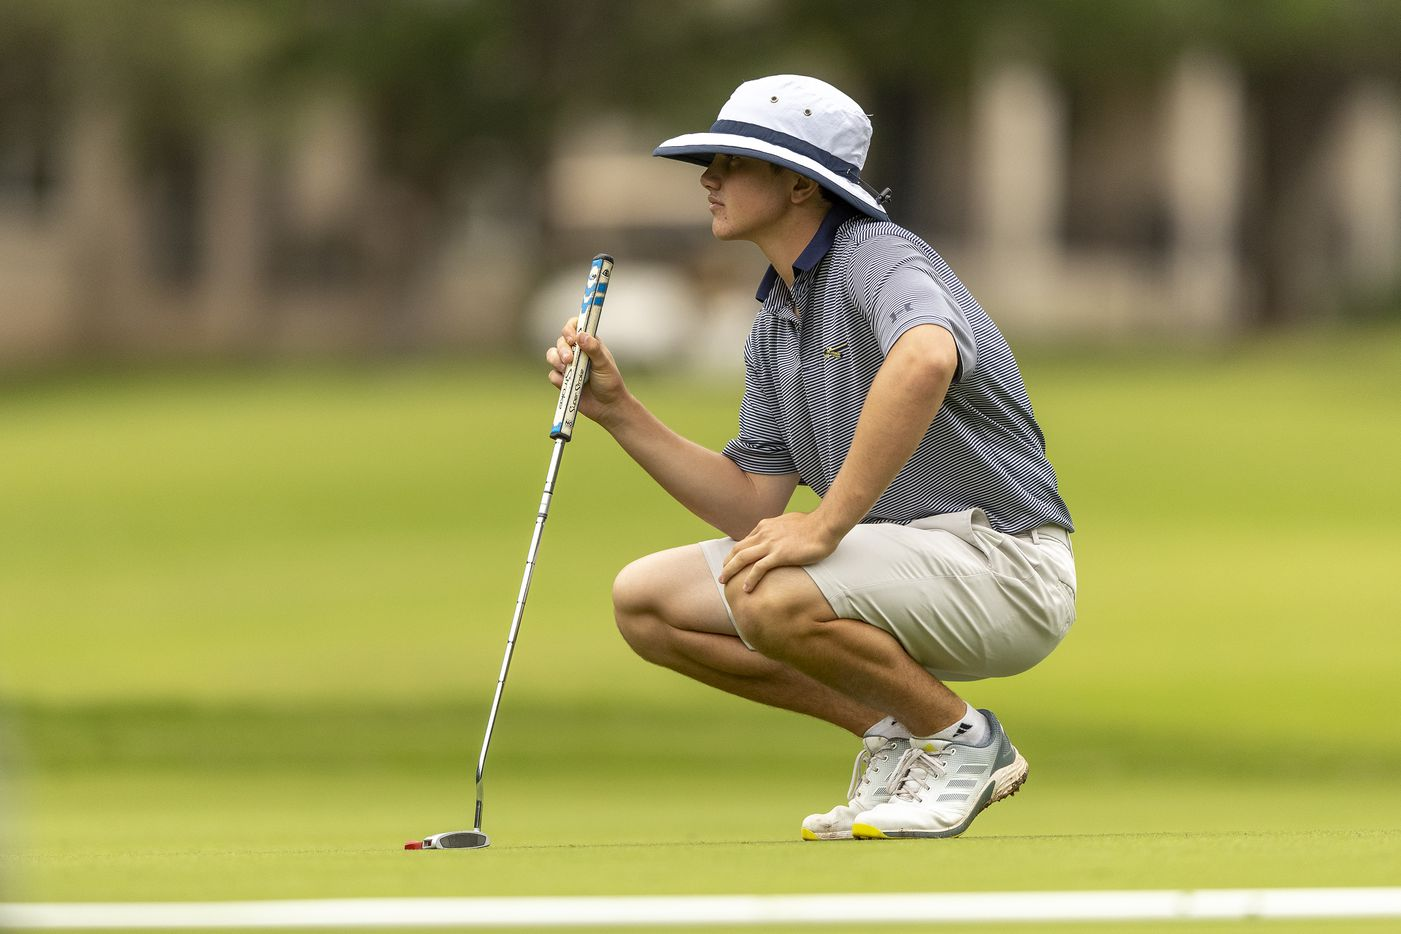 KellerÕs Kaelen Dulany studies his shot on the 1st green during the final round of the UIL Class 6A boys golf tournament in Georgetown, Tuesday, May 18, 2021. (Stephen Spillman/Special Contributor)